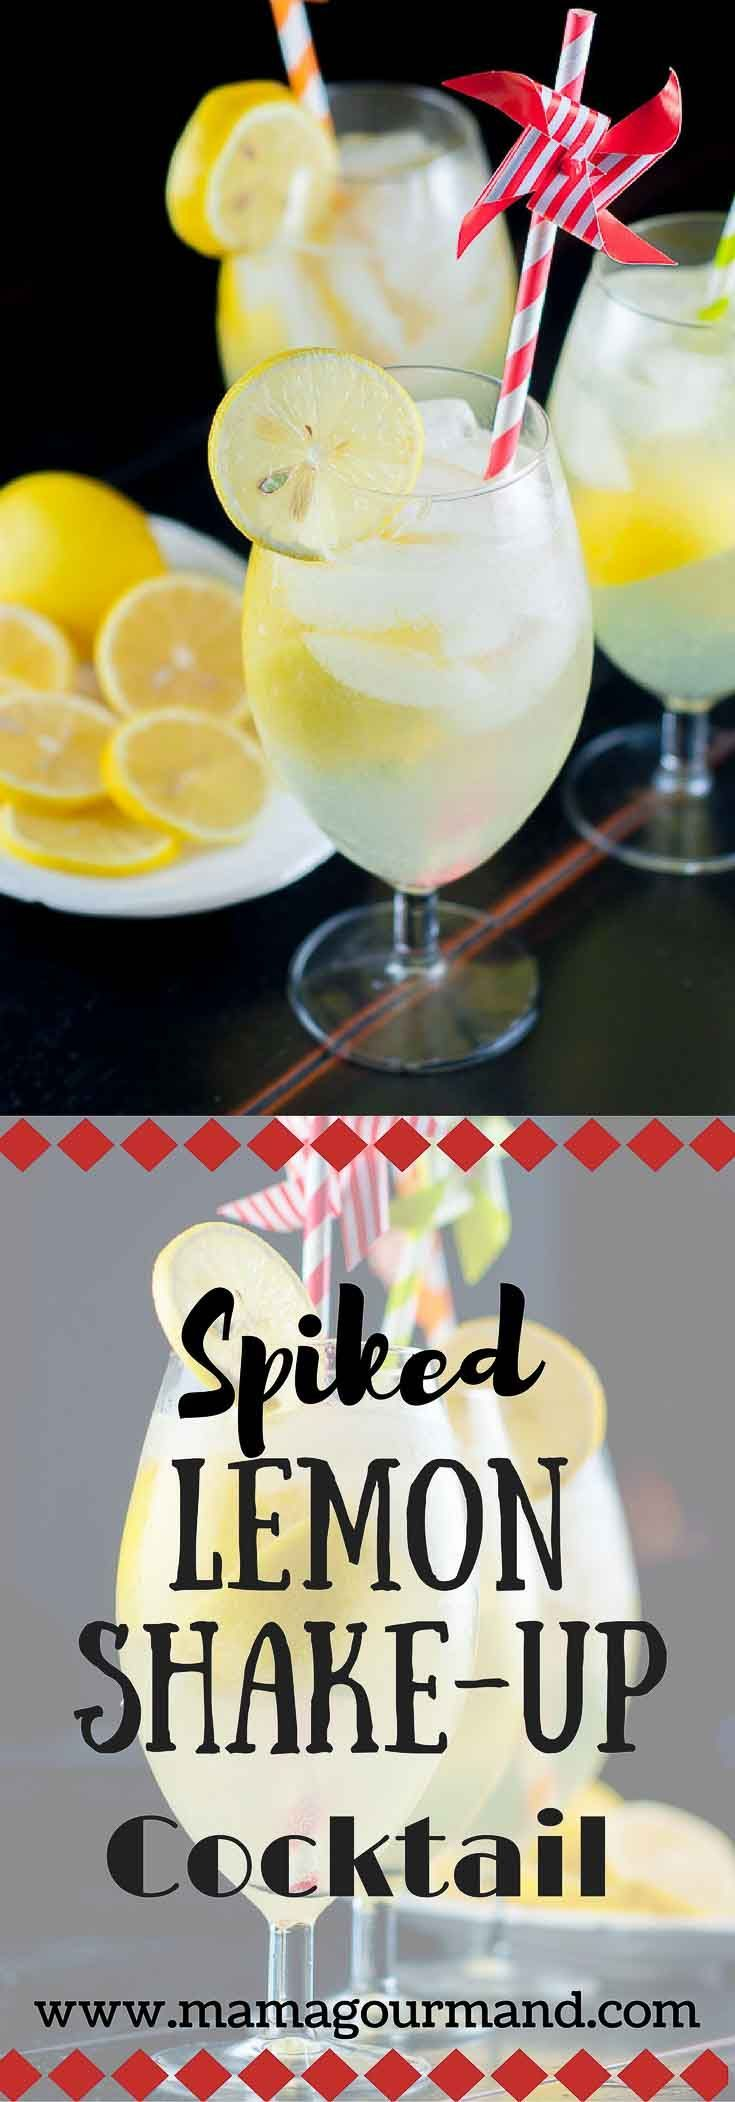 Spiked Lemon Shake-Up Cocktail is your classic vodka lemonade drink brought to the next level. It's quick, easy, and has that fresh lemon shake-up taste.